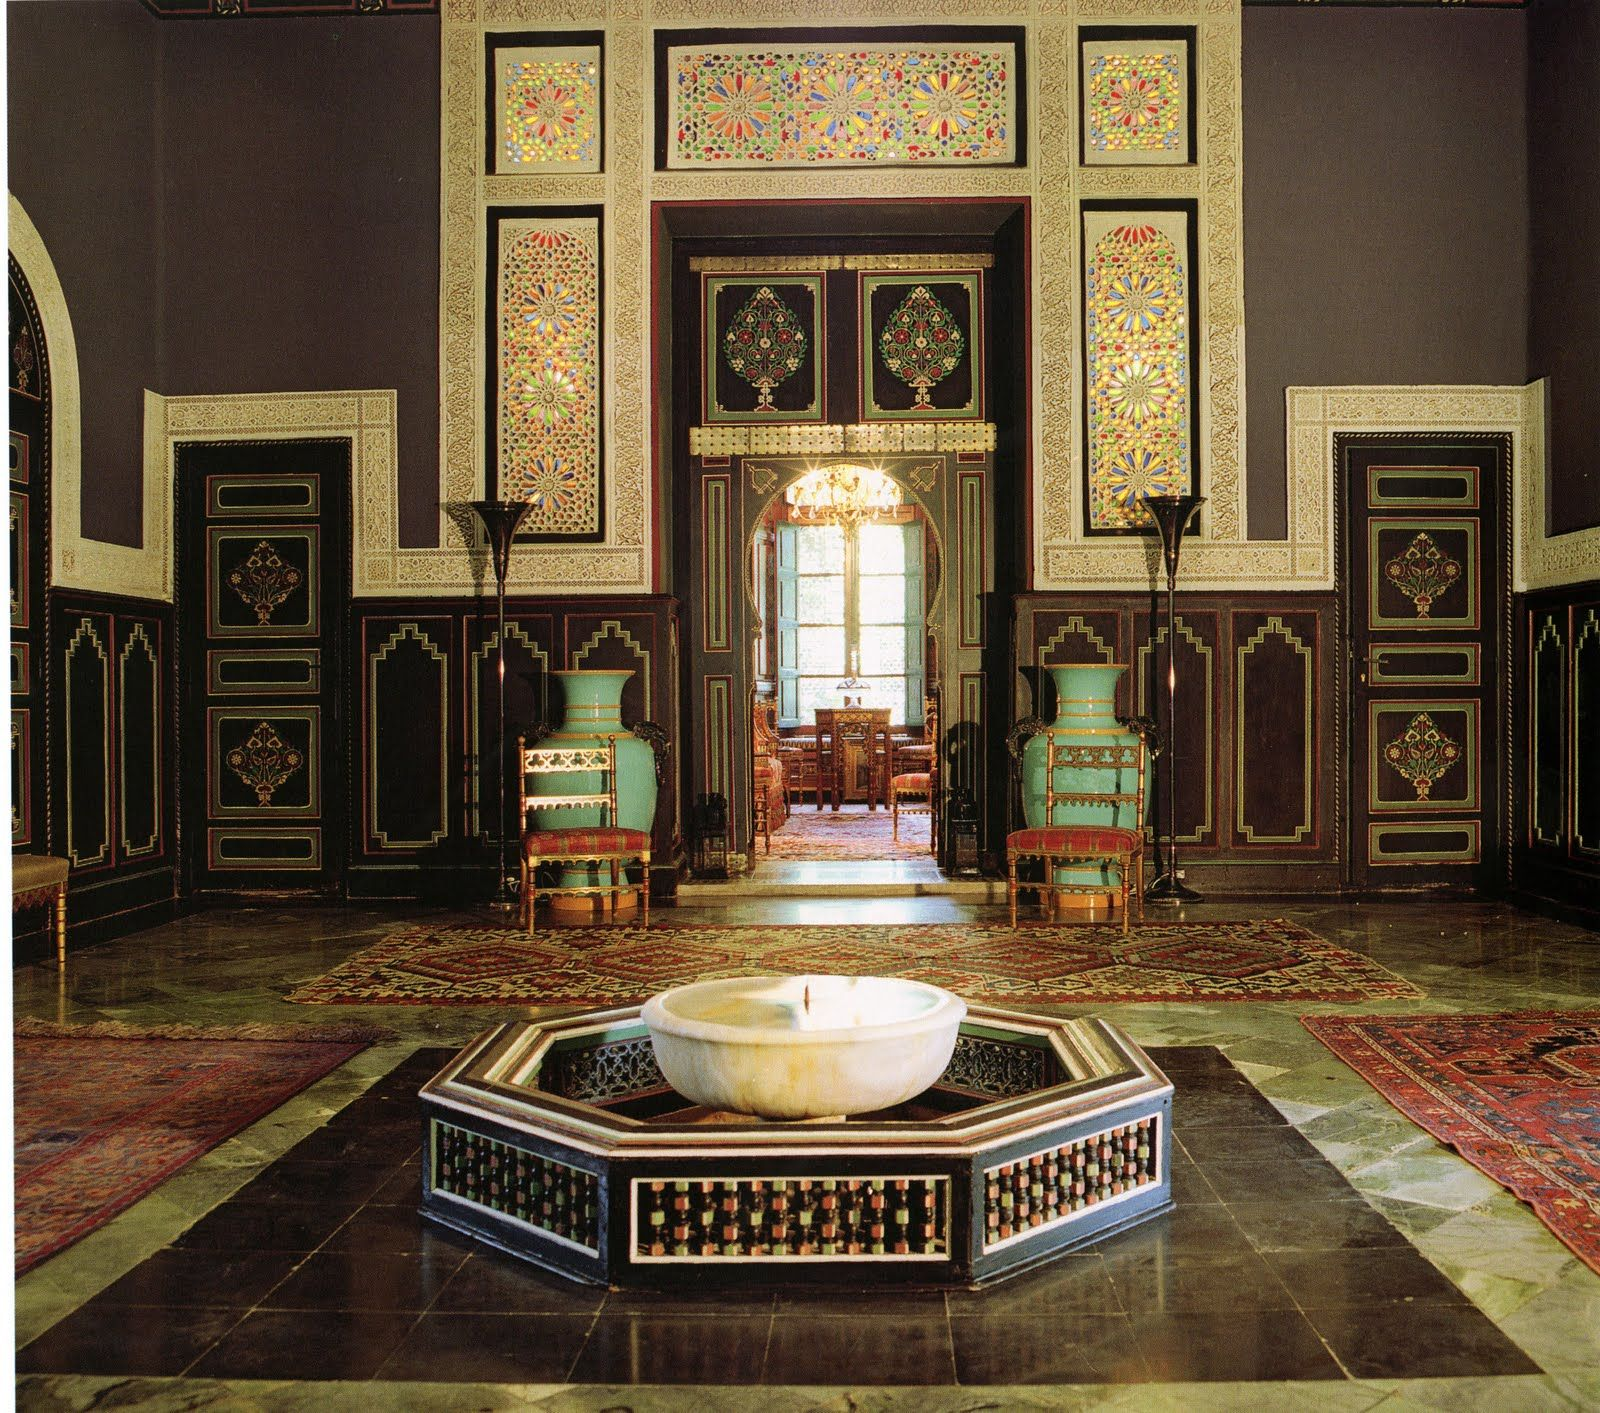 Ysl In Morocco I Love Everything The Color The Tile Work The